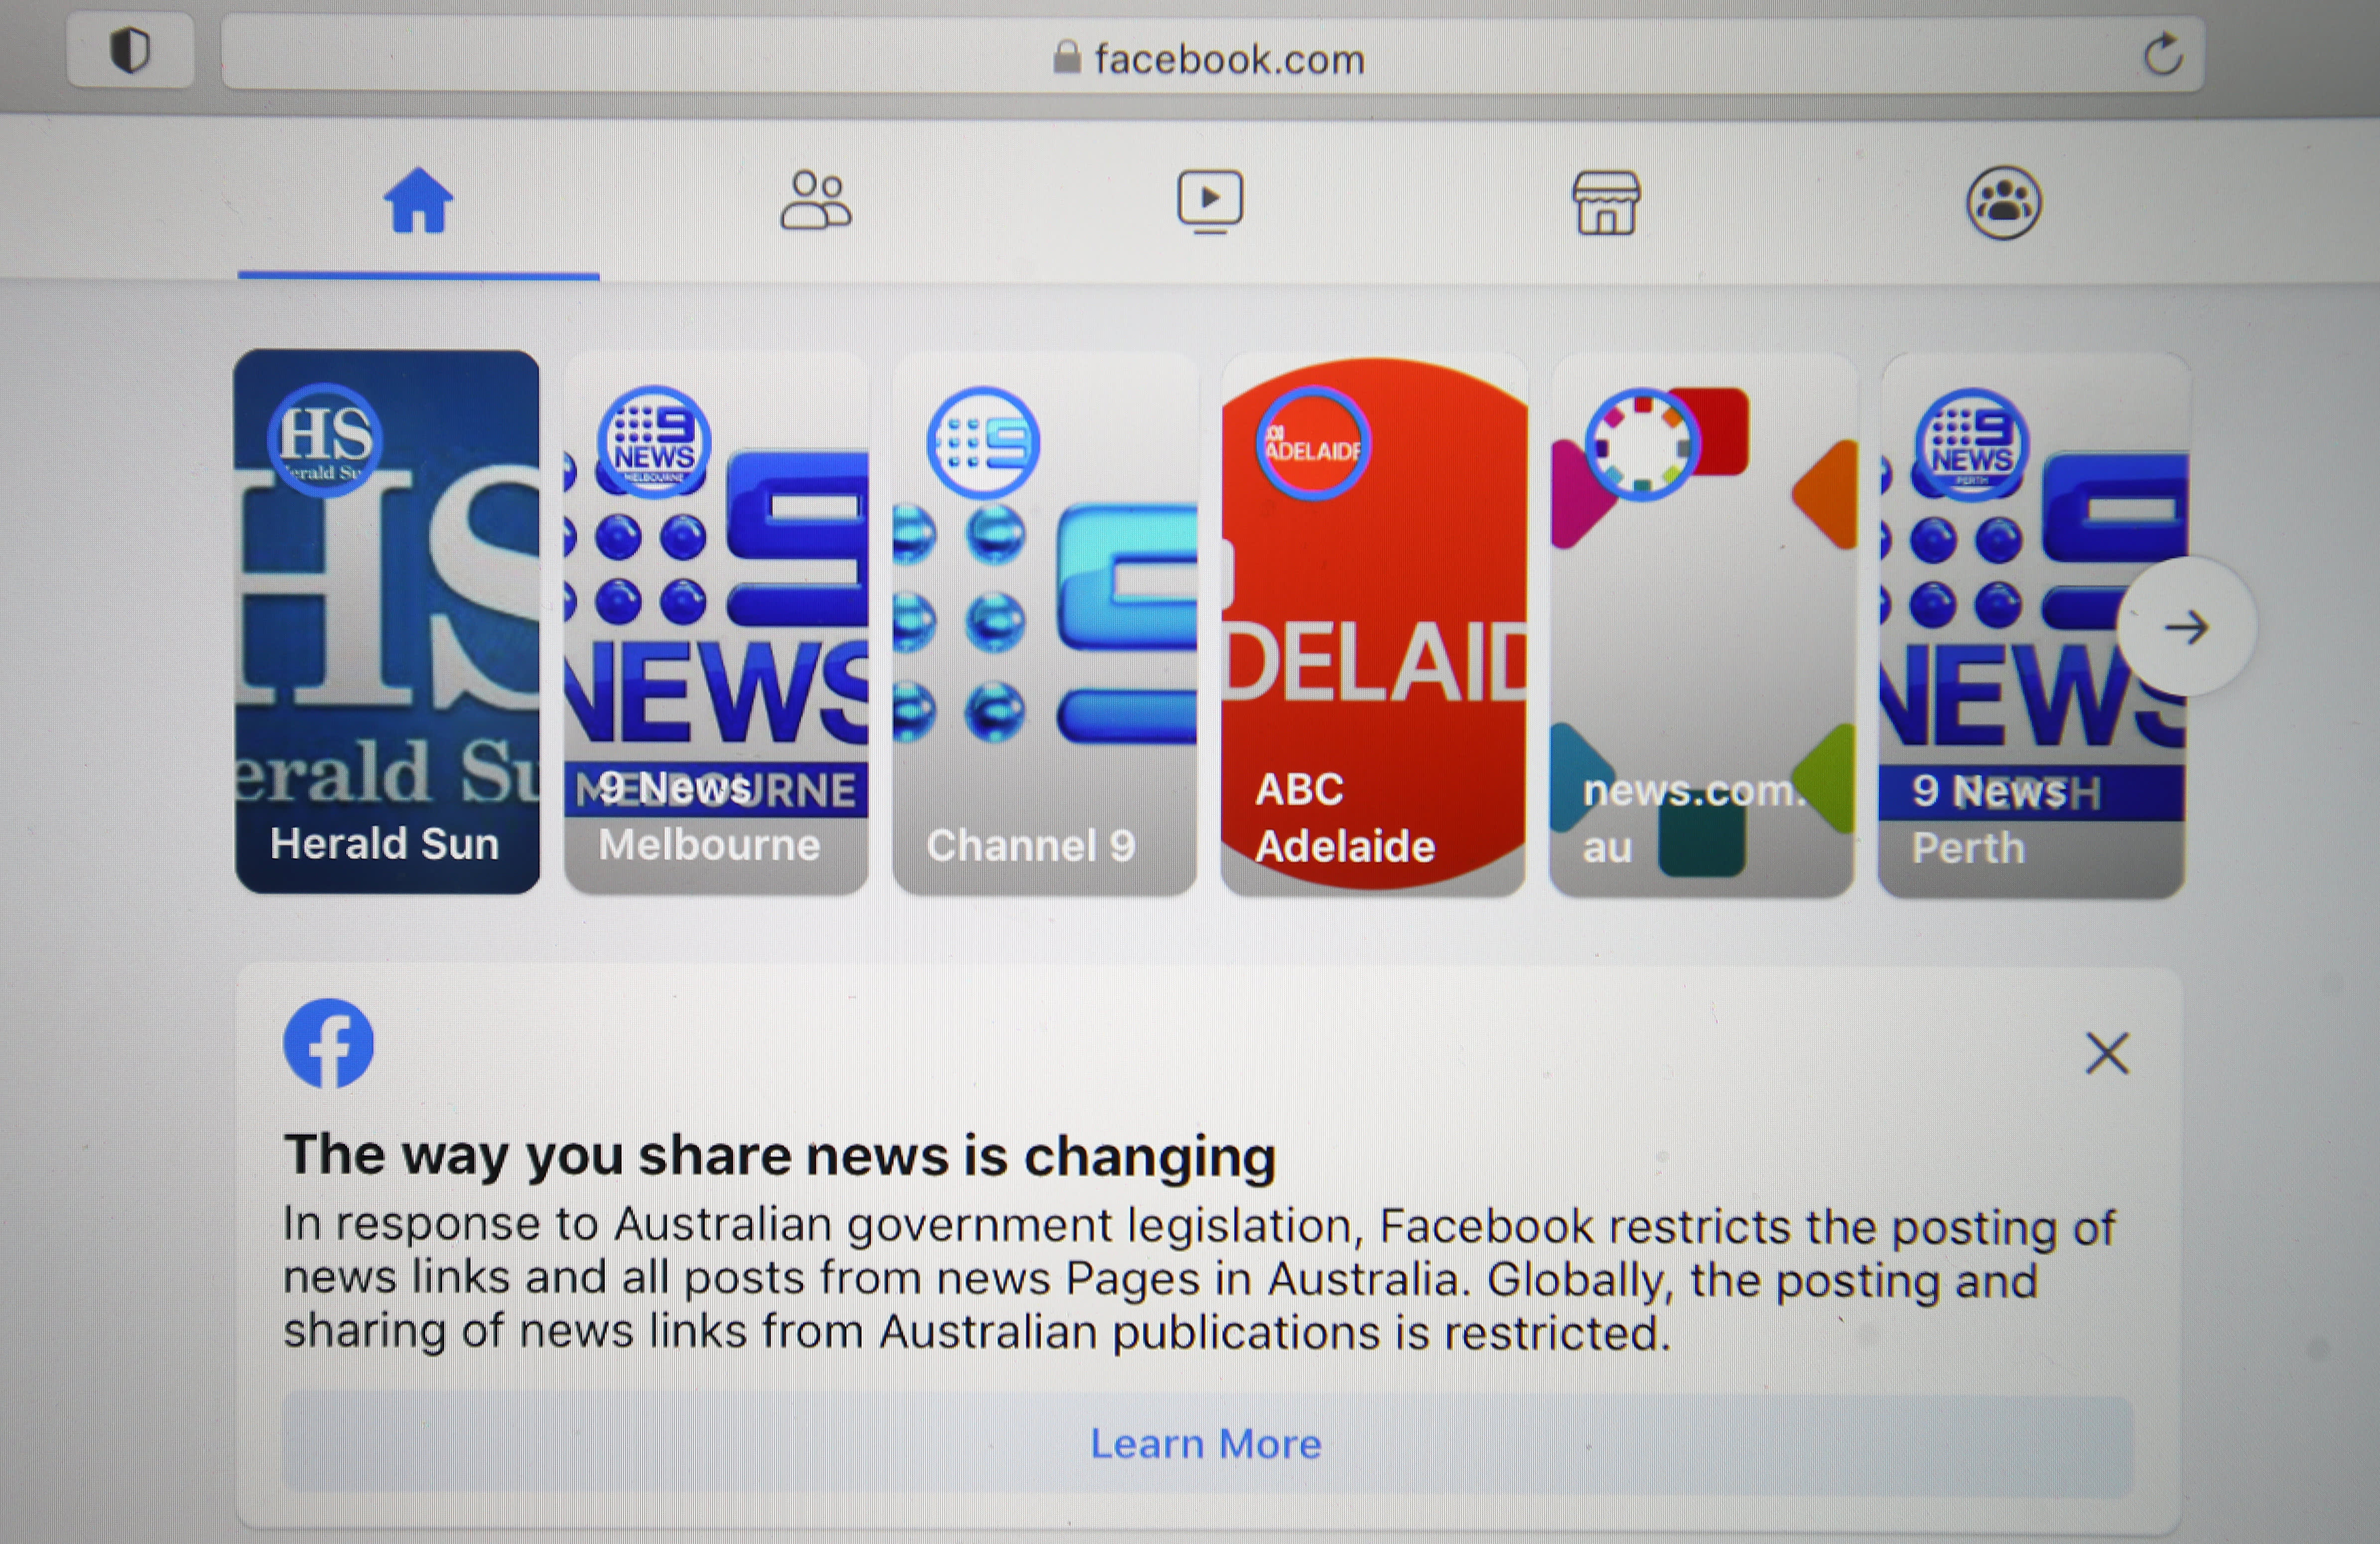 'Arrogant' and 'wrong': Australia slams Facebook's move to block news as unnecessary and heavy-handed - CNBC